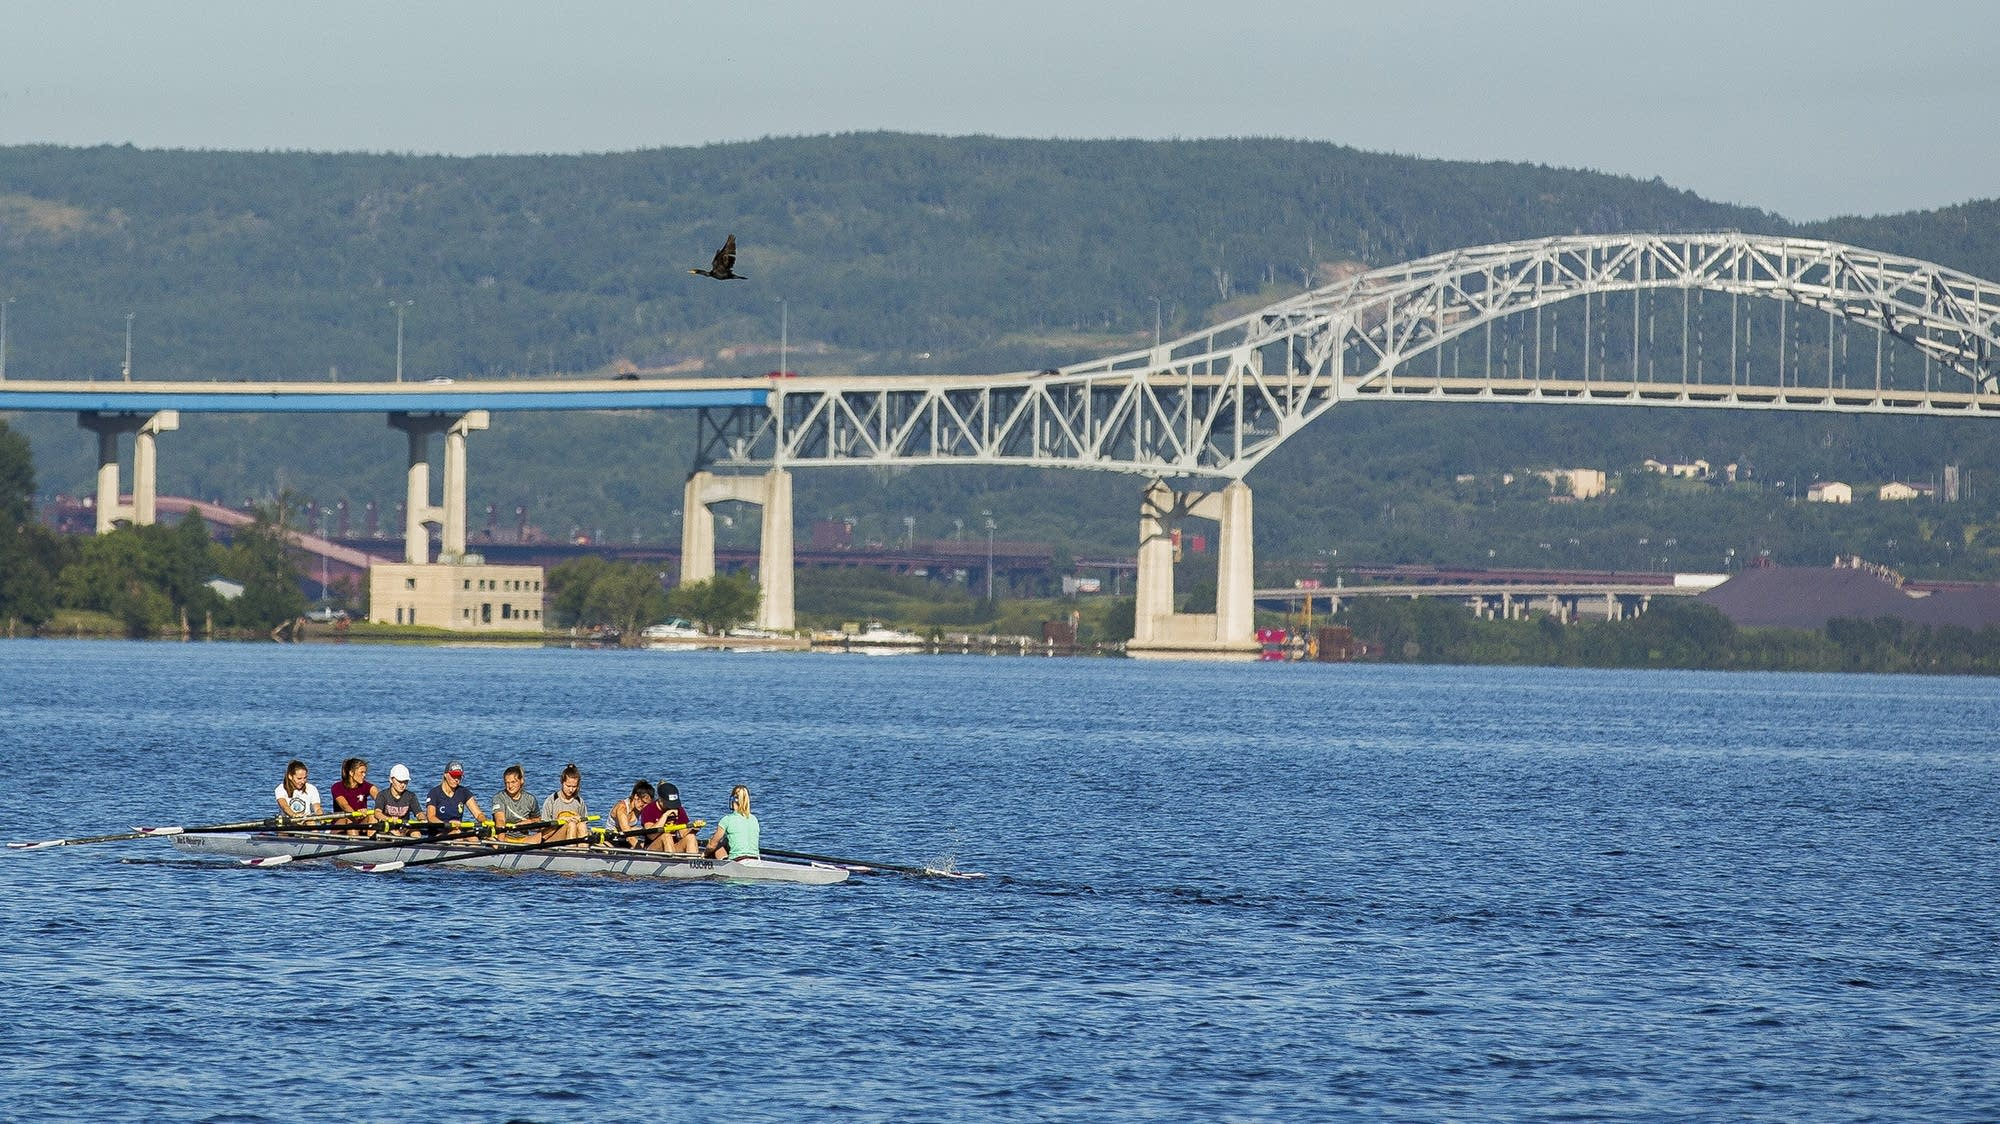 Rowers move past Blatnik Bridge.